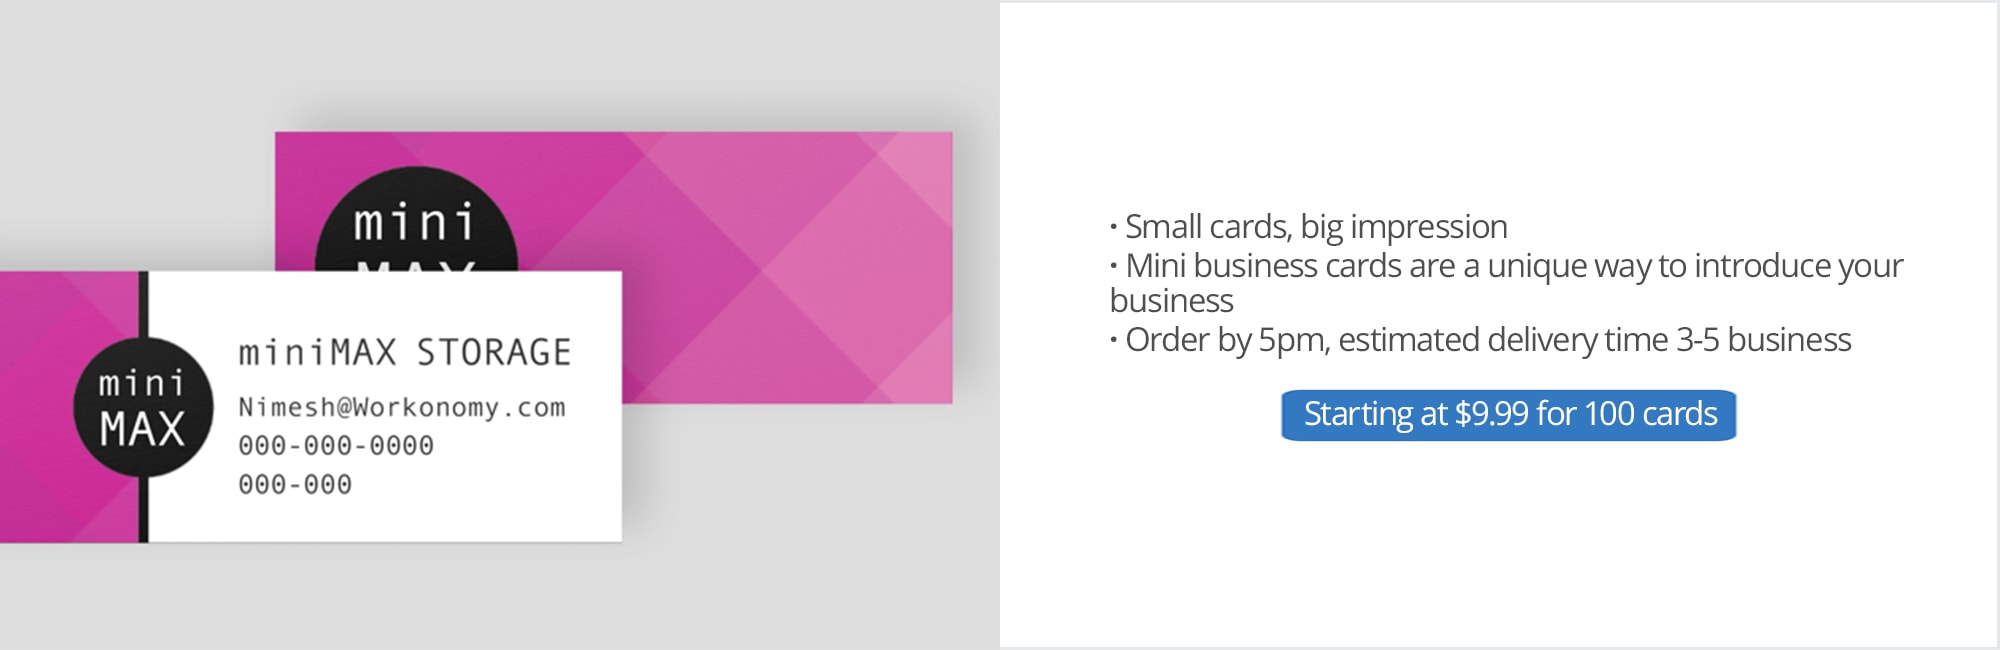 mini_business_cards_redesign